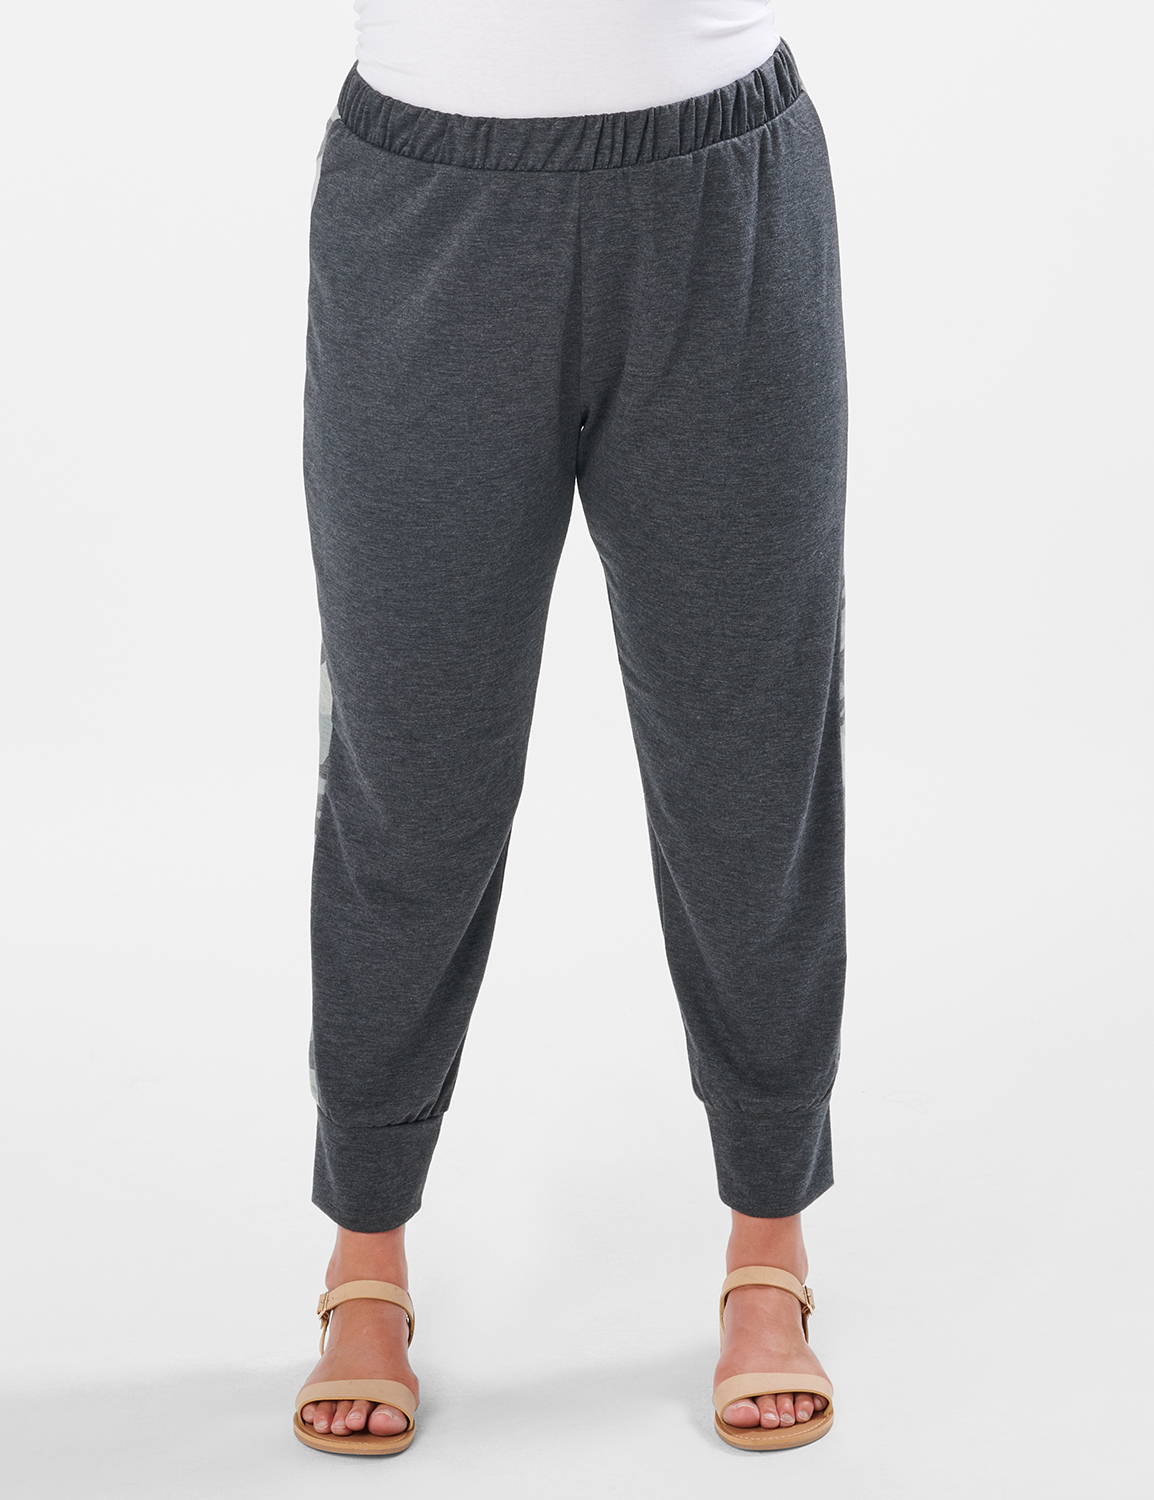 Jogger Knit Pant With Camouflage Trim - Plus -Charcoal - Front